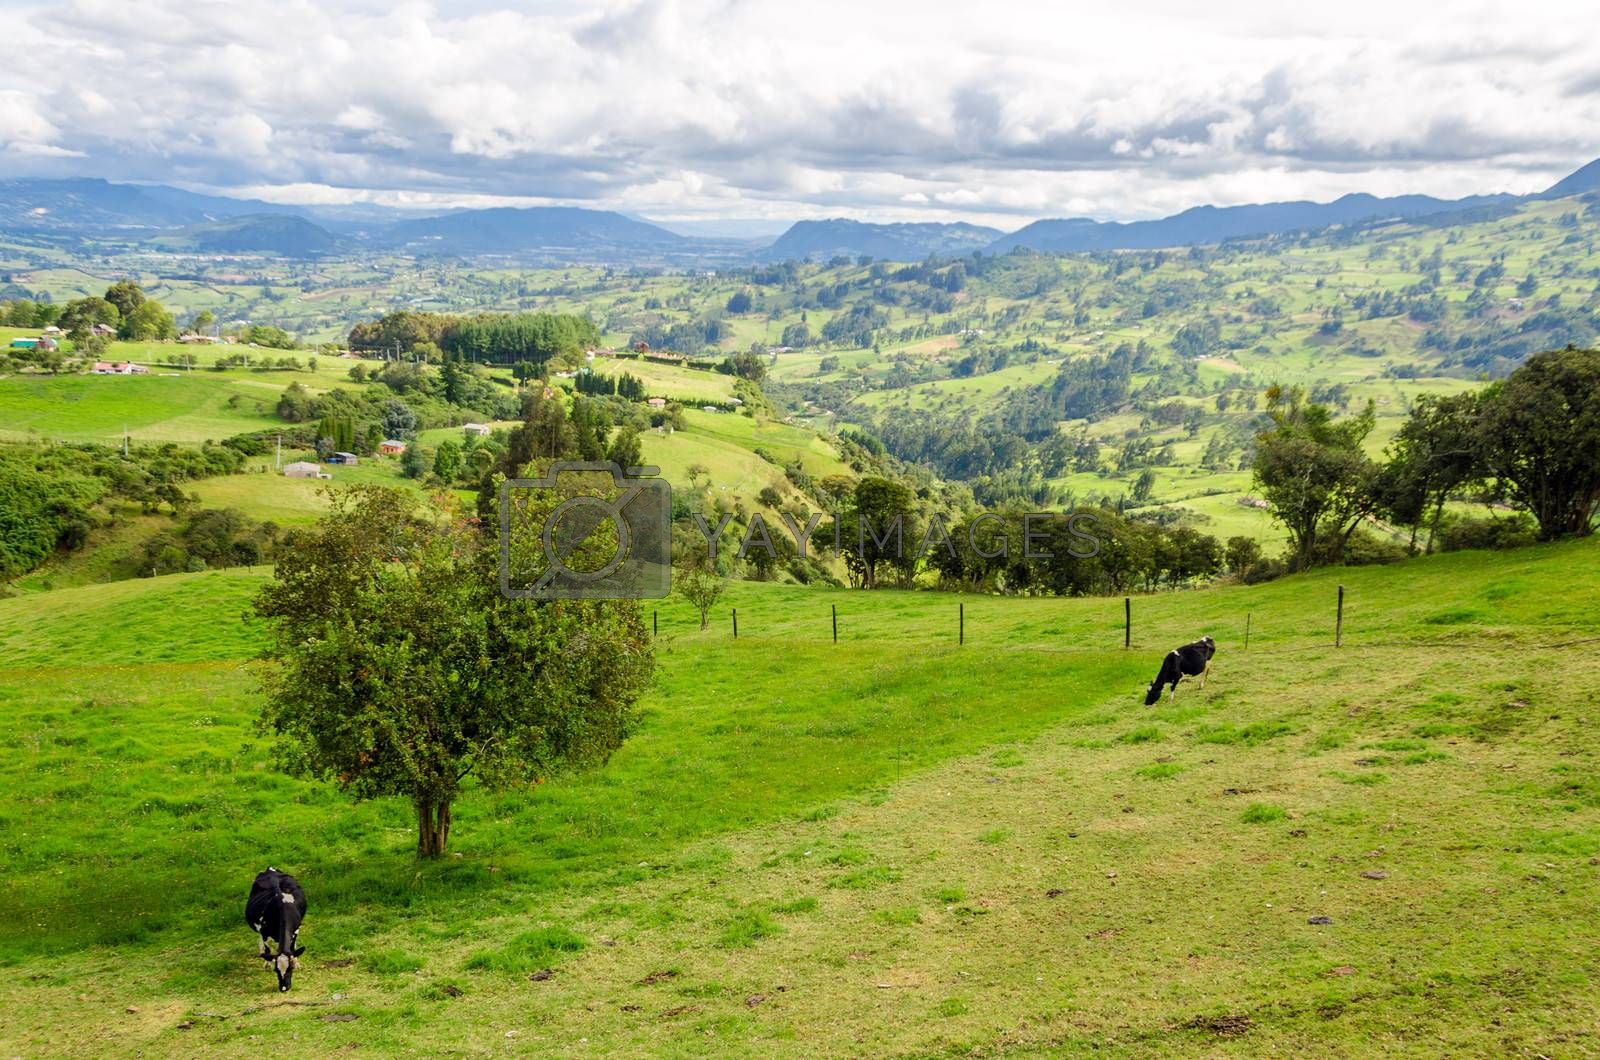 Royalty free image of Landscape and Cows by jkraft5